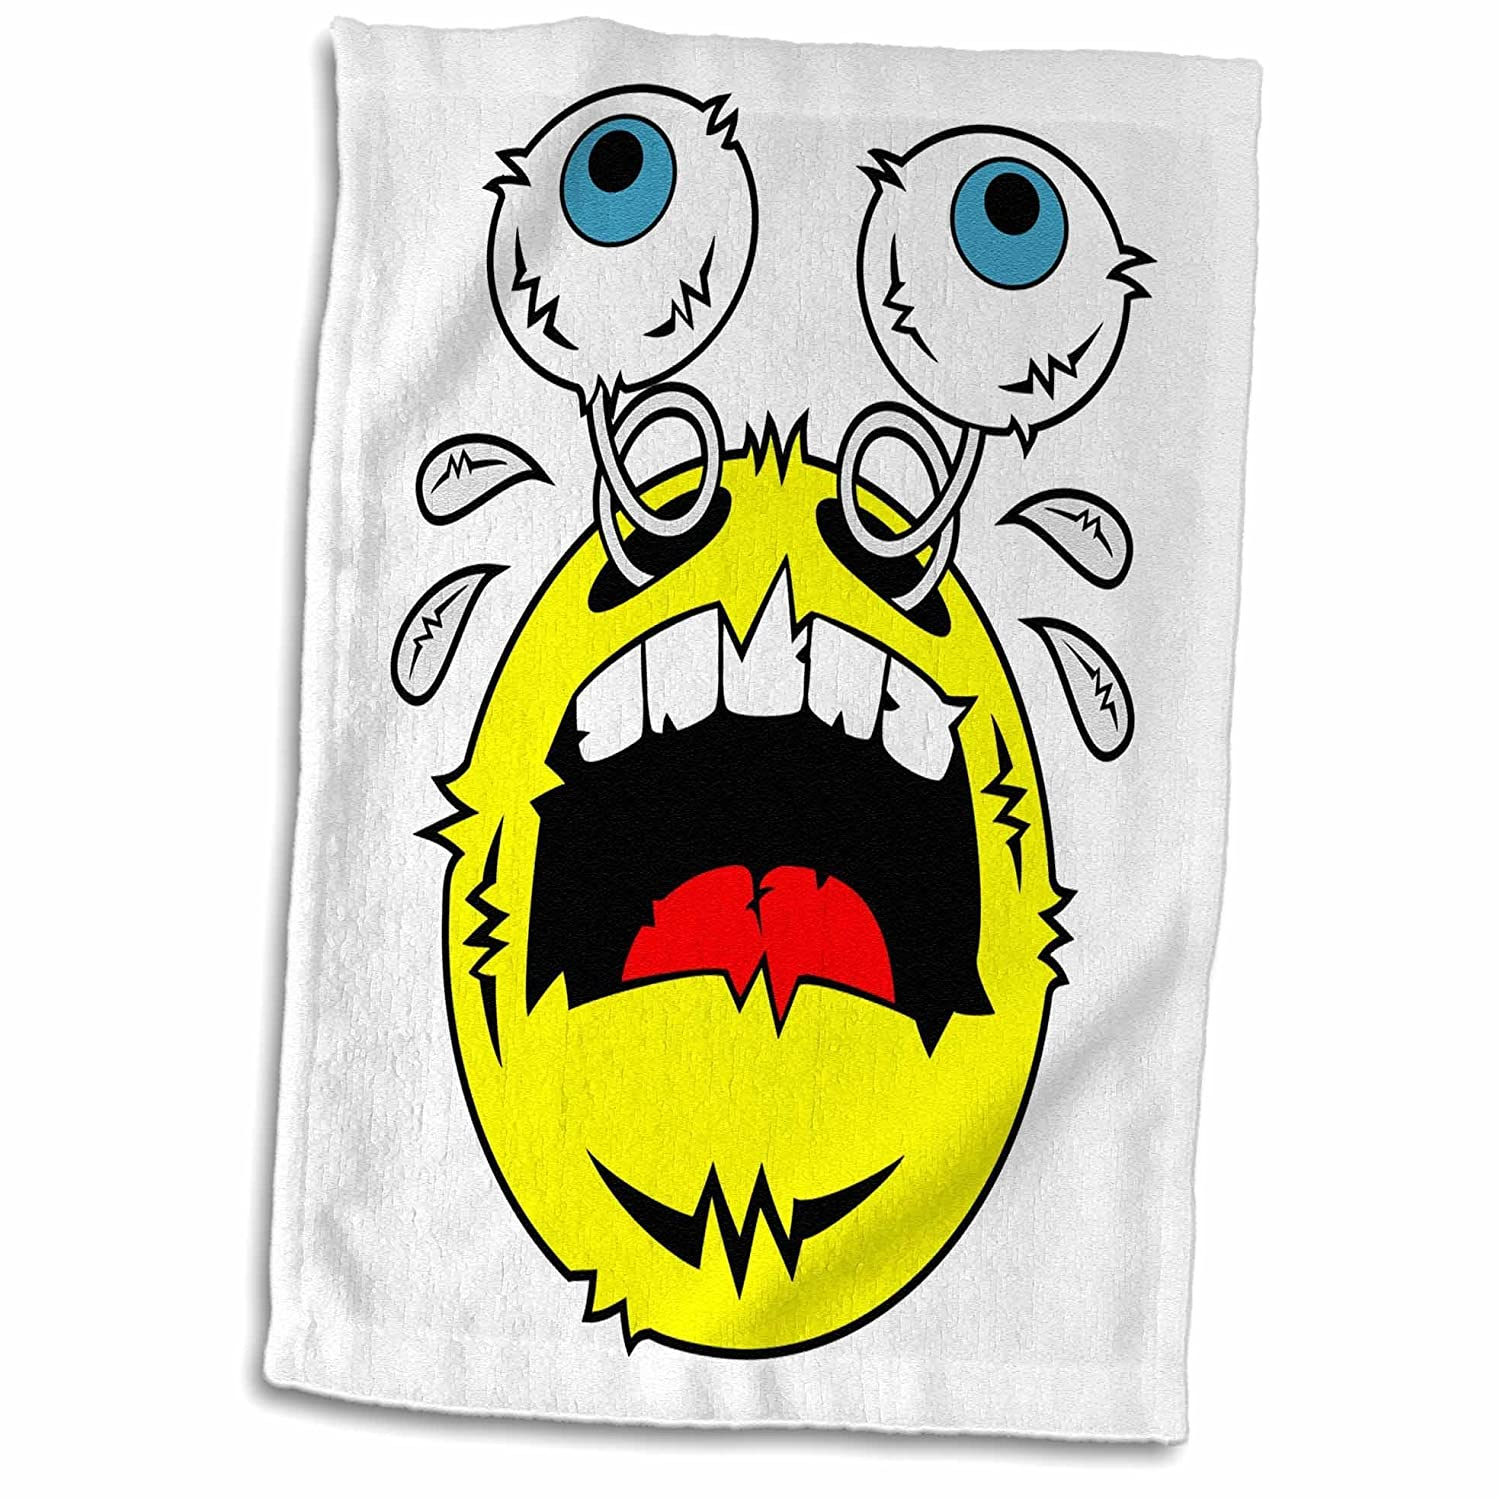 3D Rose Weirdo Art Image of a Crying Emoticon Freaking Out on a White Canvas TWL/_173496/_1 Towel 15 x 22